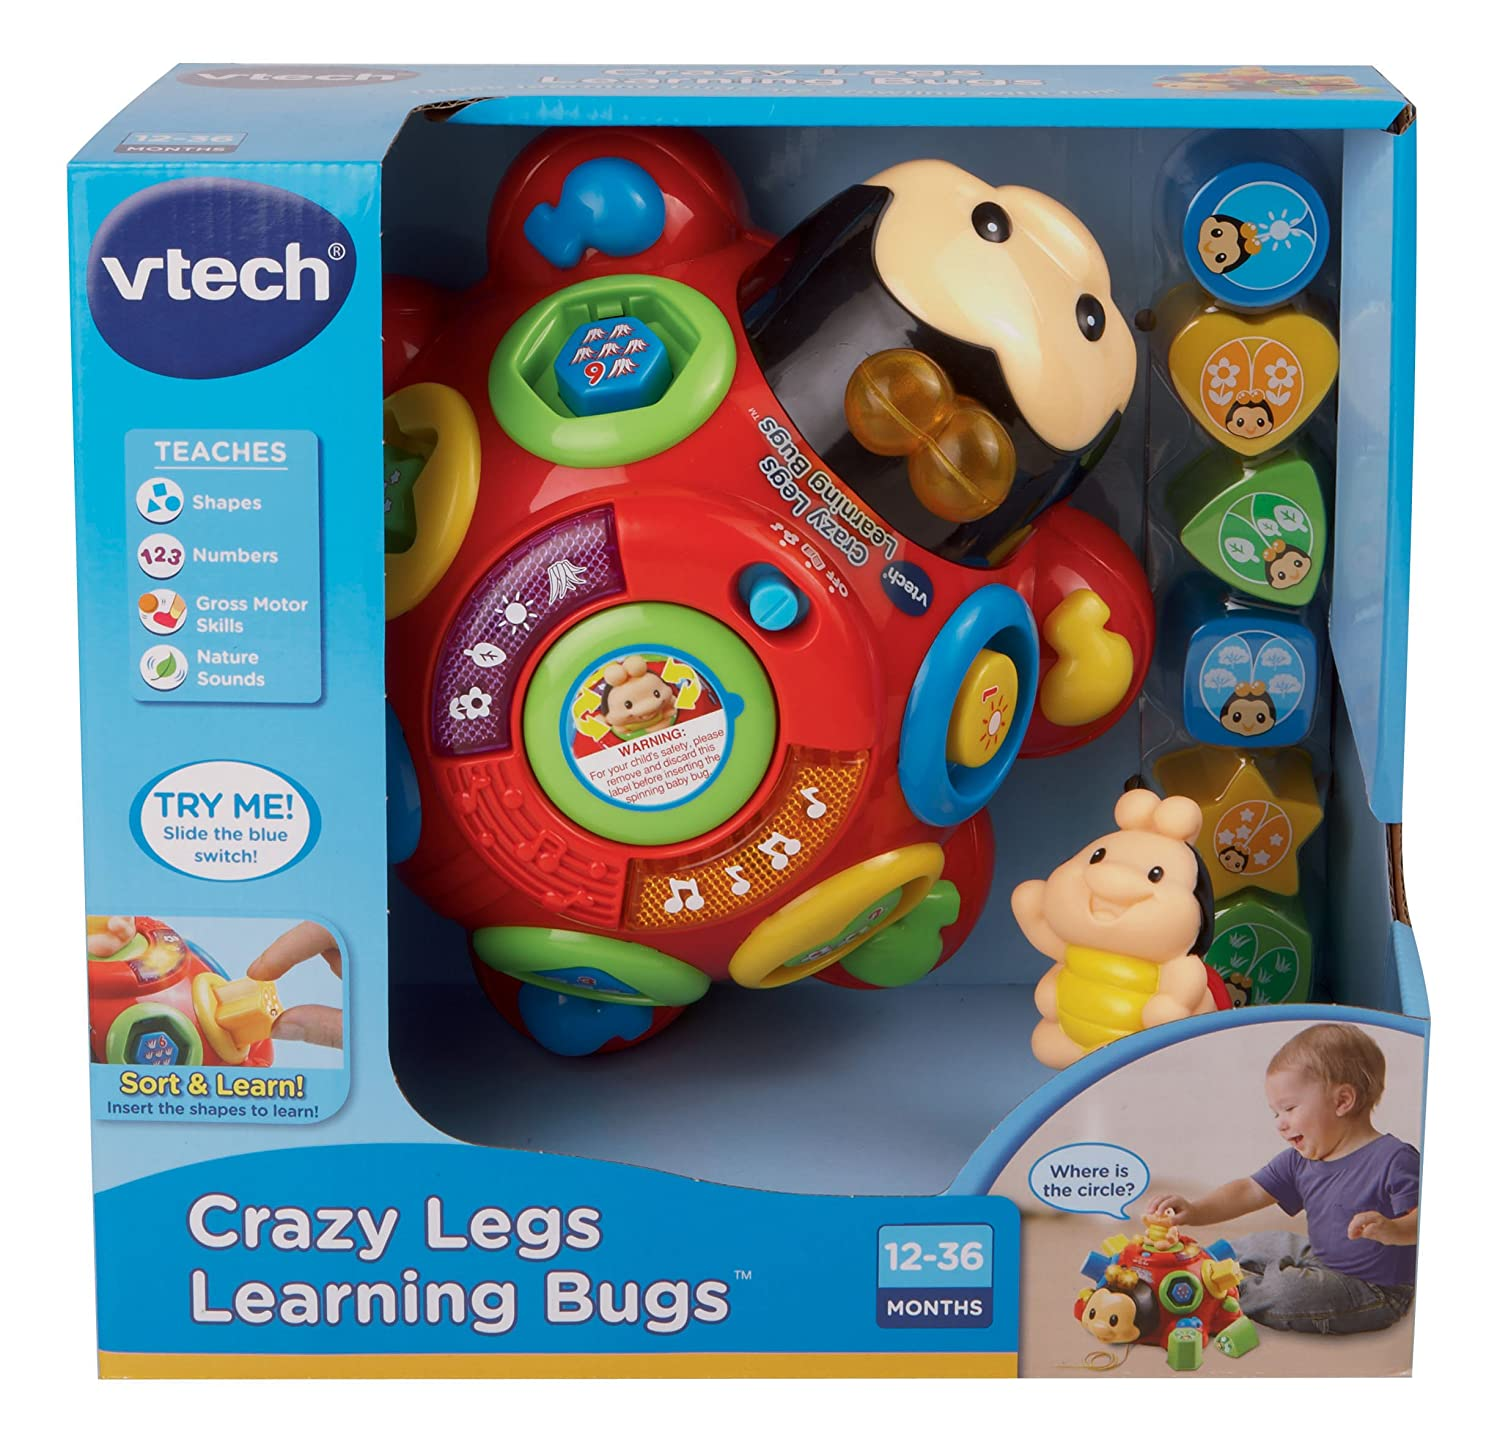 Amazon VTech Crazy Legs Learning Bugs Toys & Games